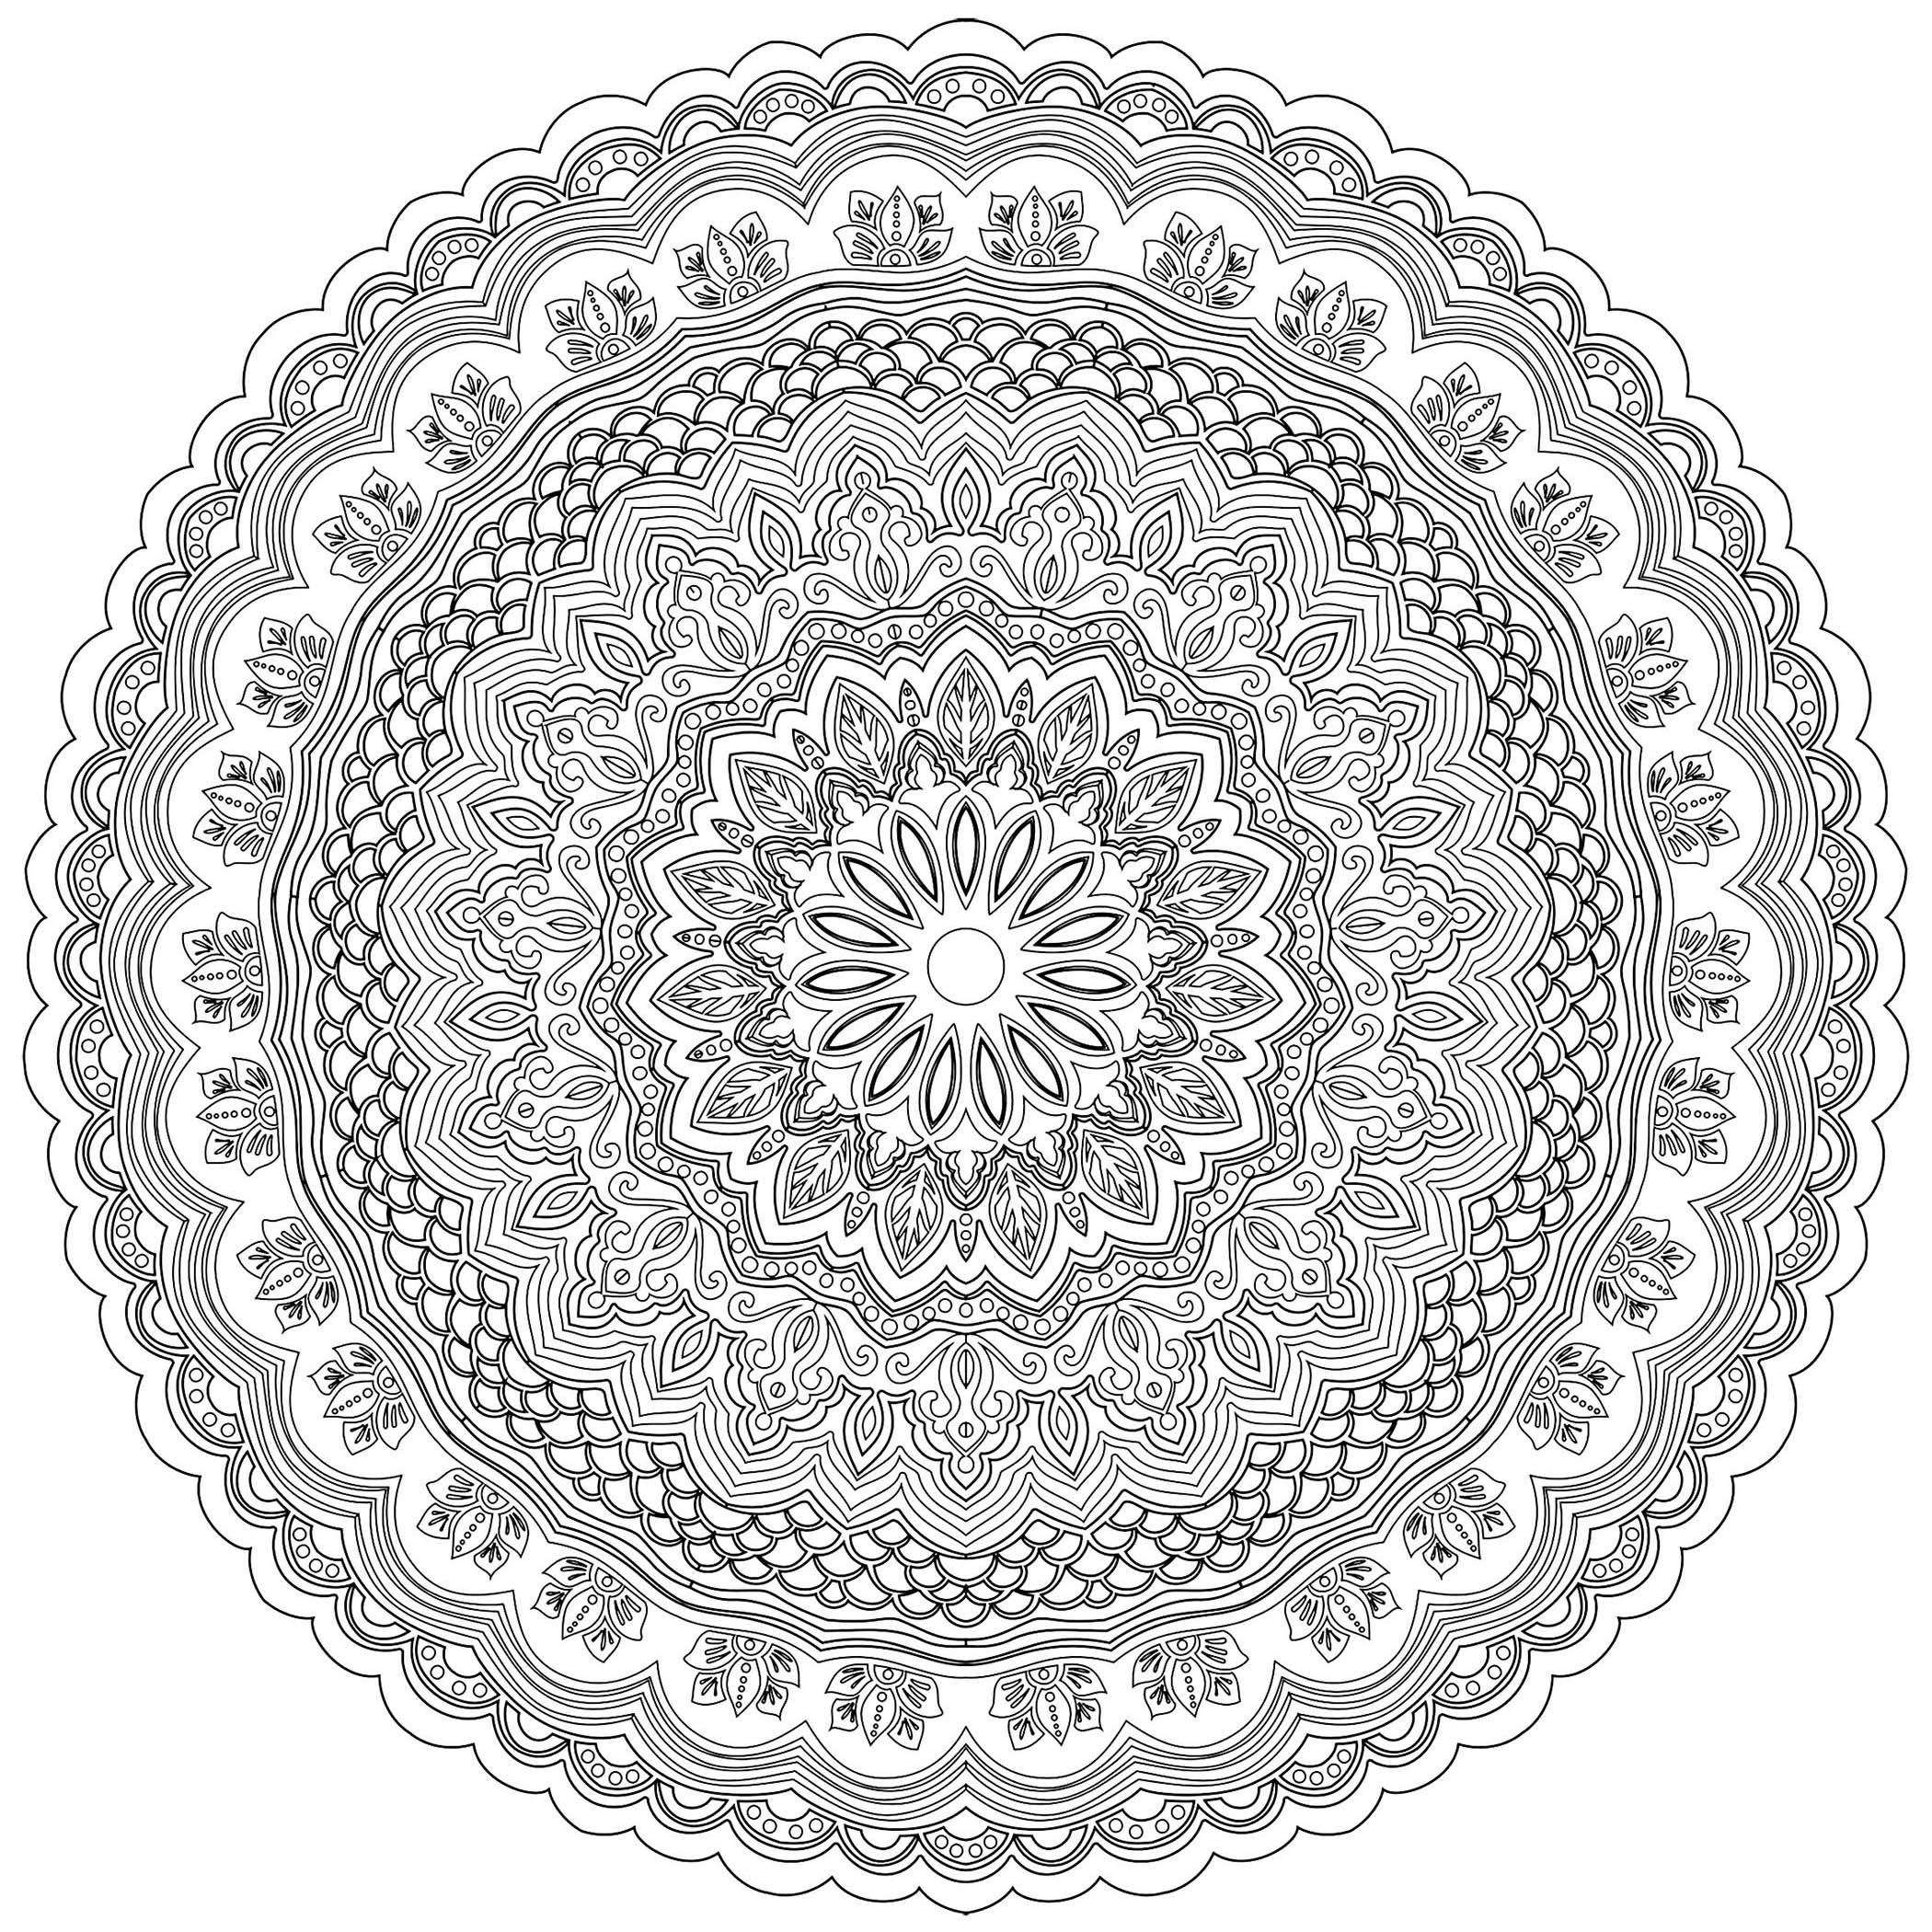 A Mandala guaranteed 100% Zen, for a moment of pure relaxation. You will quickly feel the benefits of coloring. The word 'mandala' is from the classical Indian language of Sanskrit.